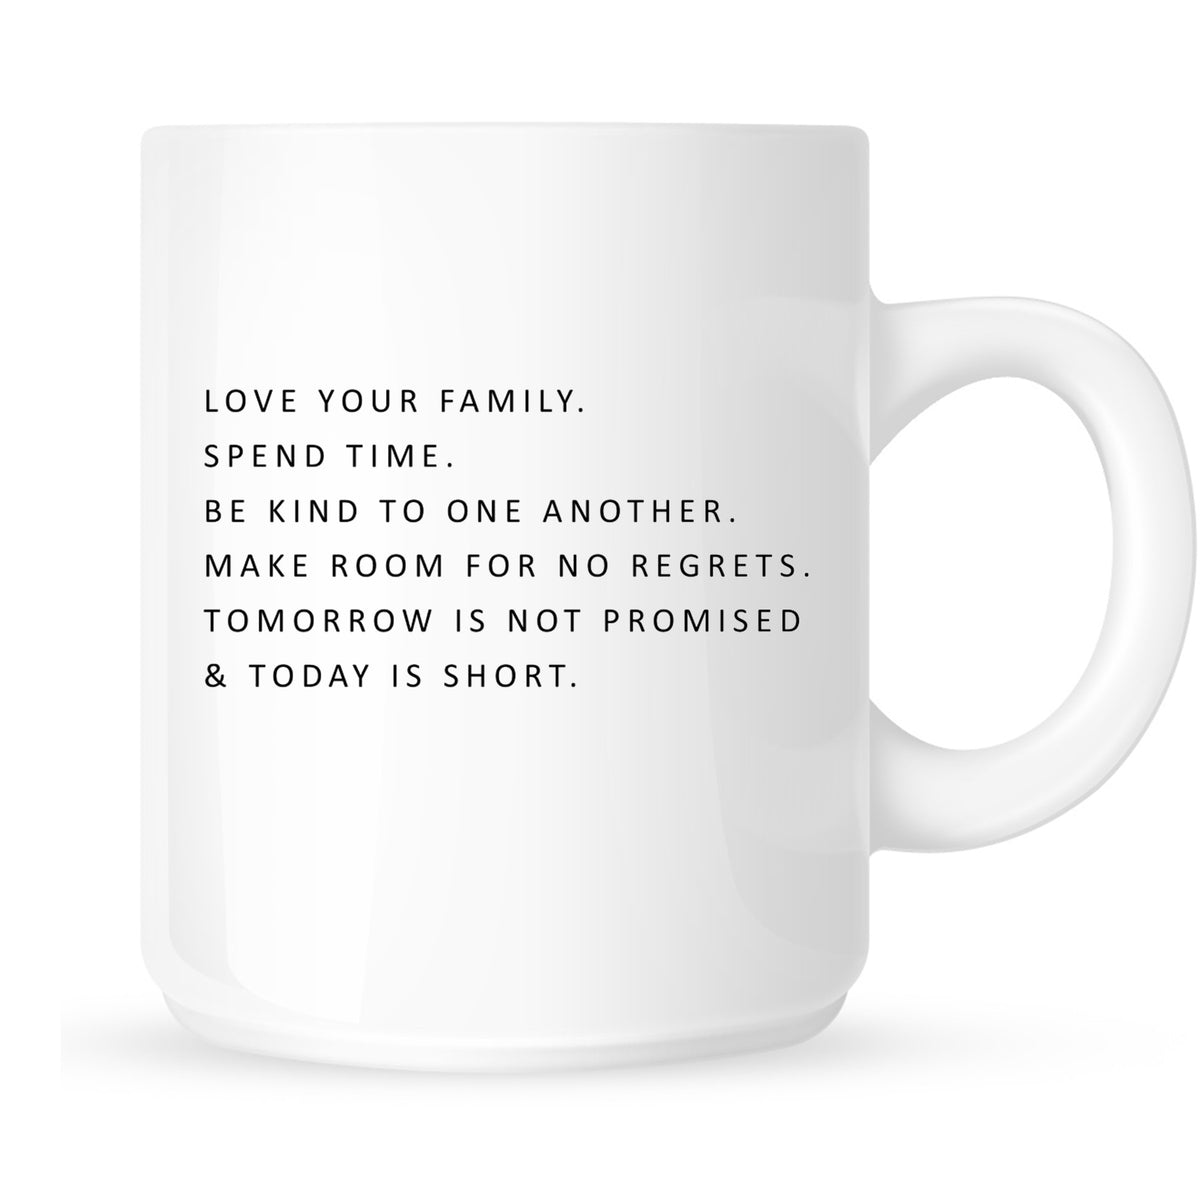 Mug - Love Your Family